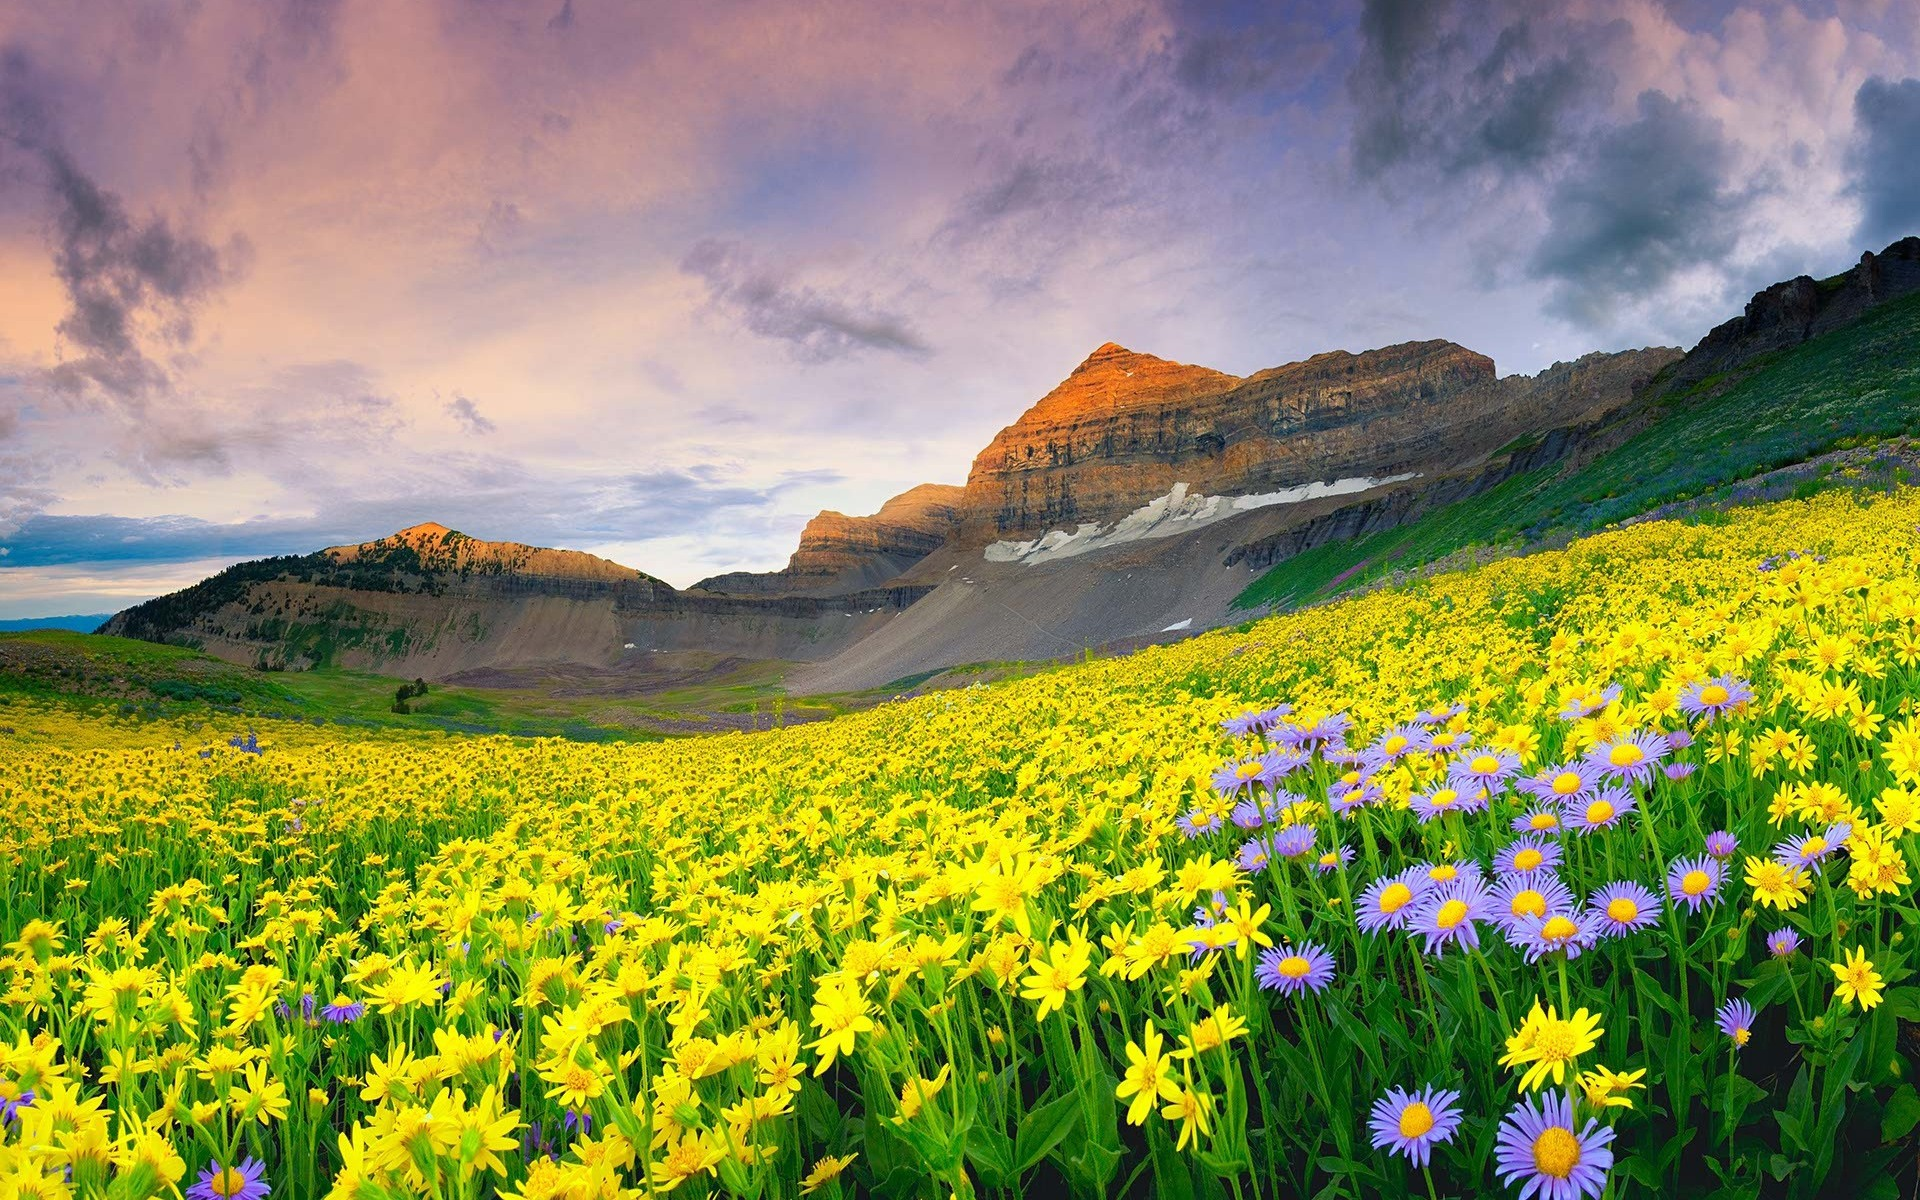 Valley Of Flowers Photos Images And Wallpapers Hd Images Near By